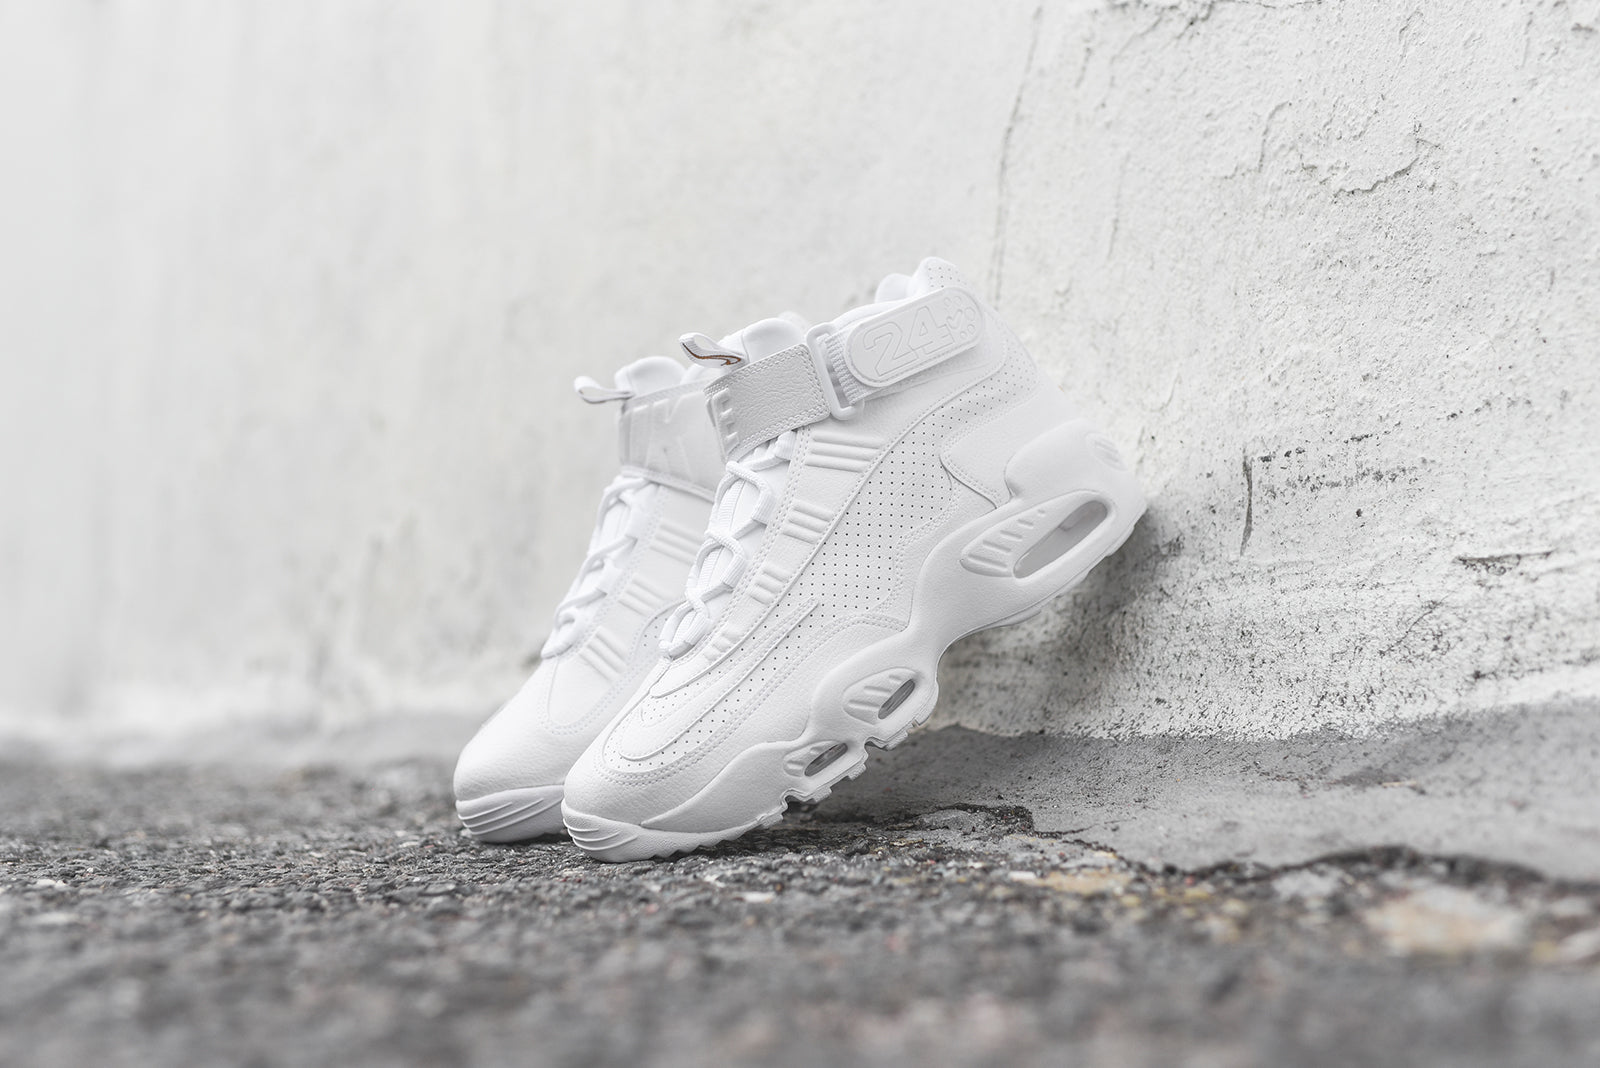 Nike Air Griffey Max 1 - InductKid – Kith